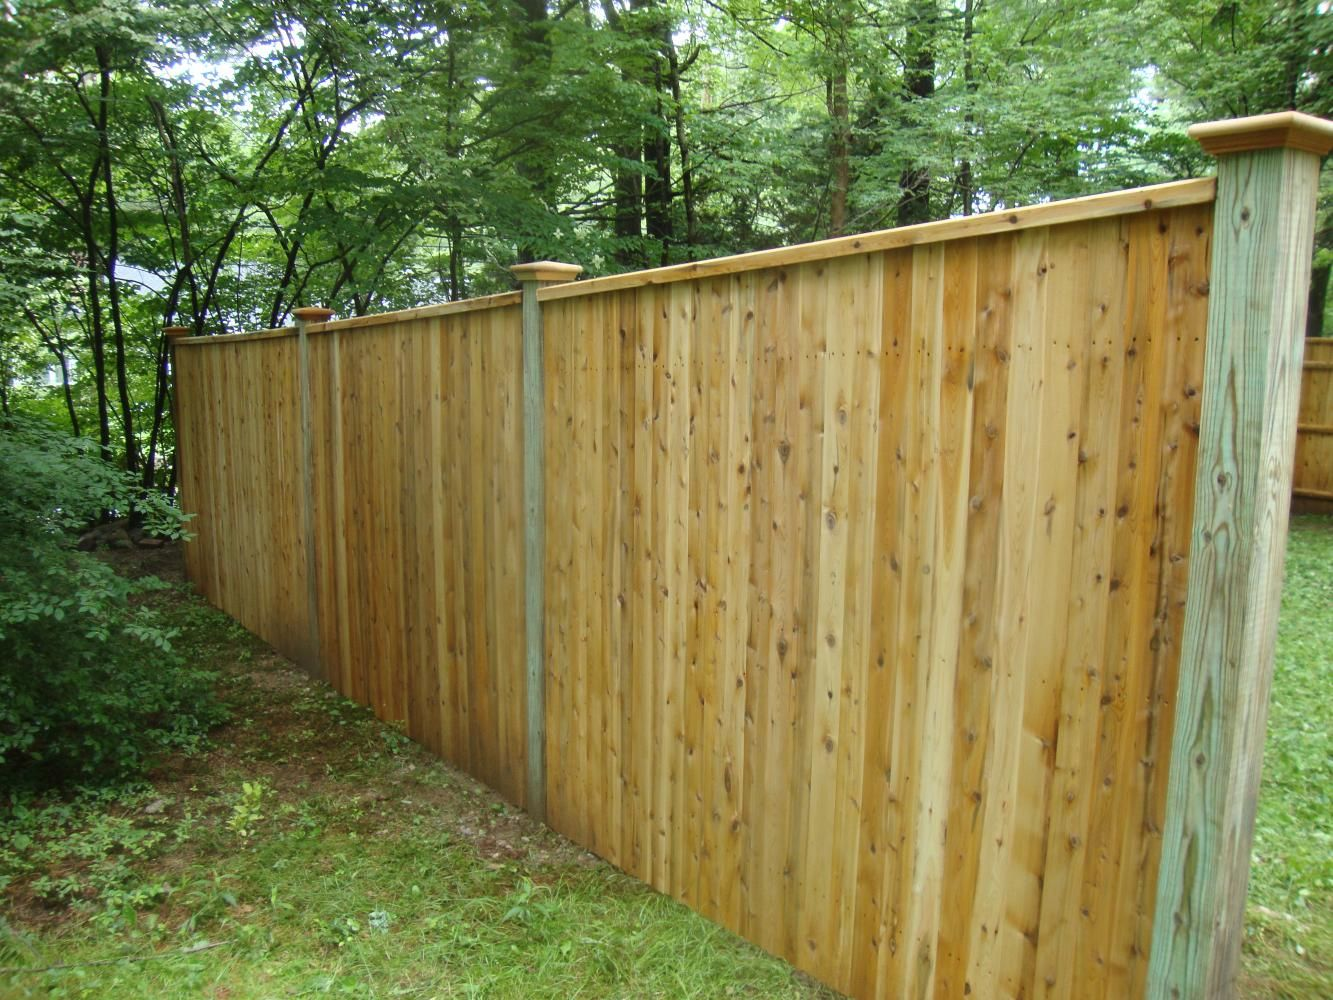 6 39 High Traditional Cedar Board Fence With Pressure